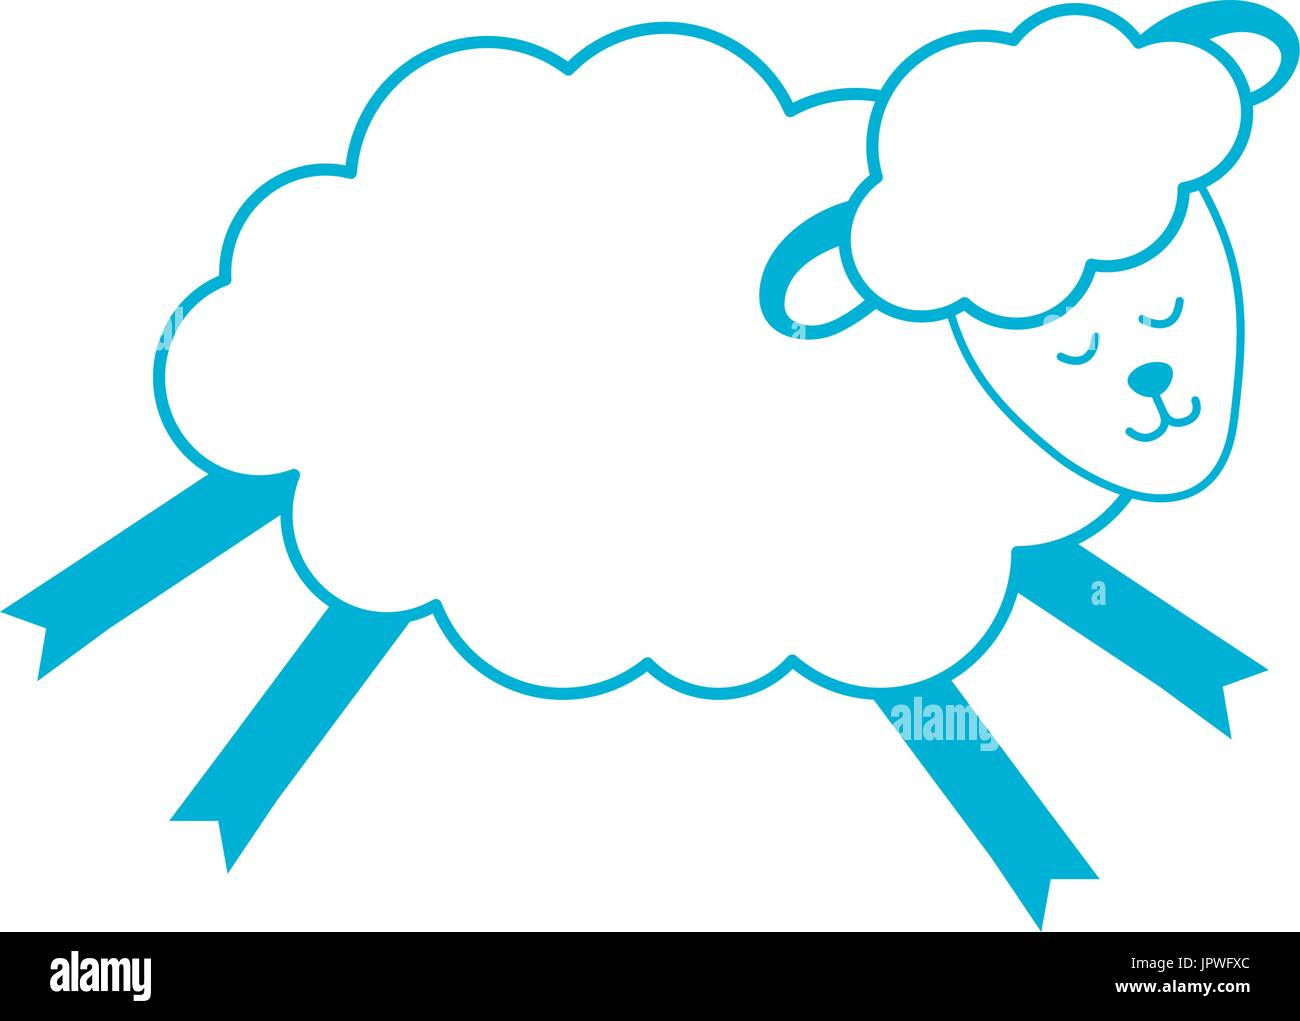 silhouette cute sheep animal with wool design - Stock Vector